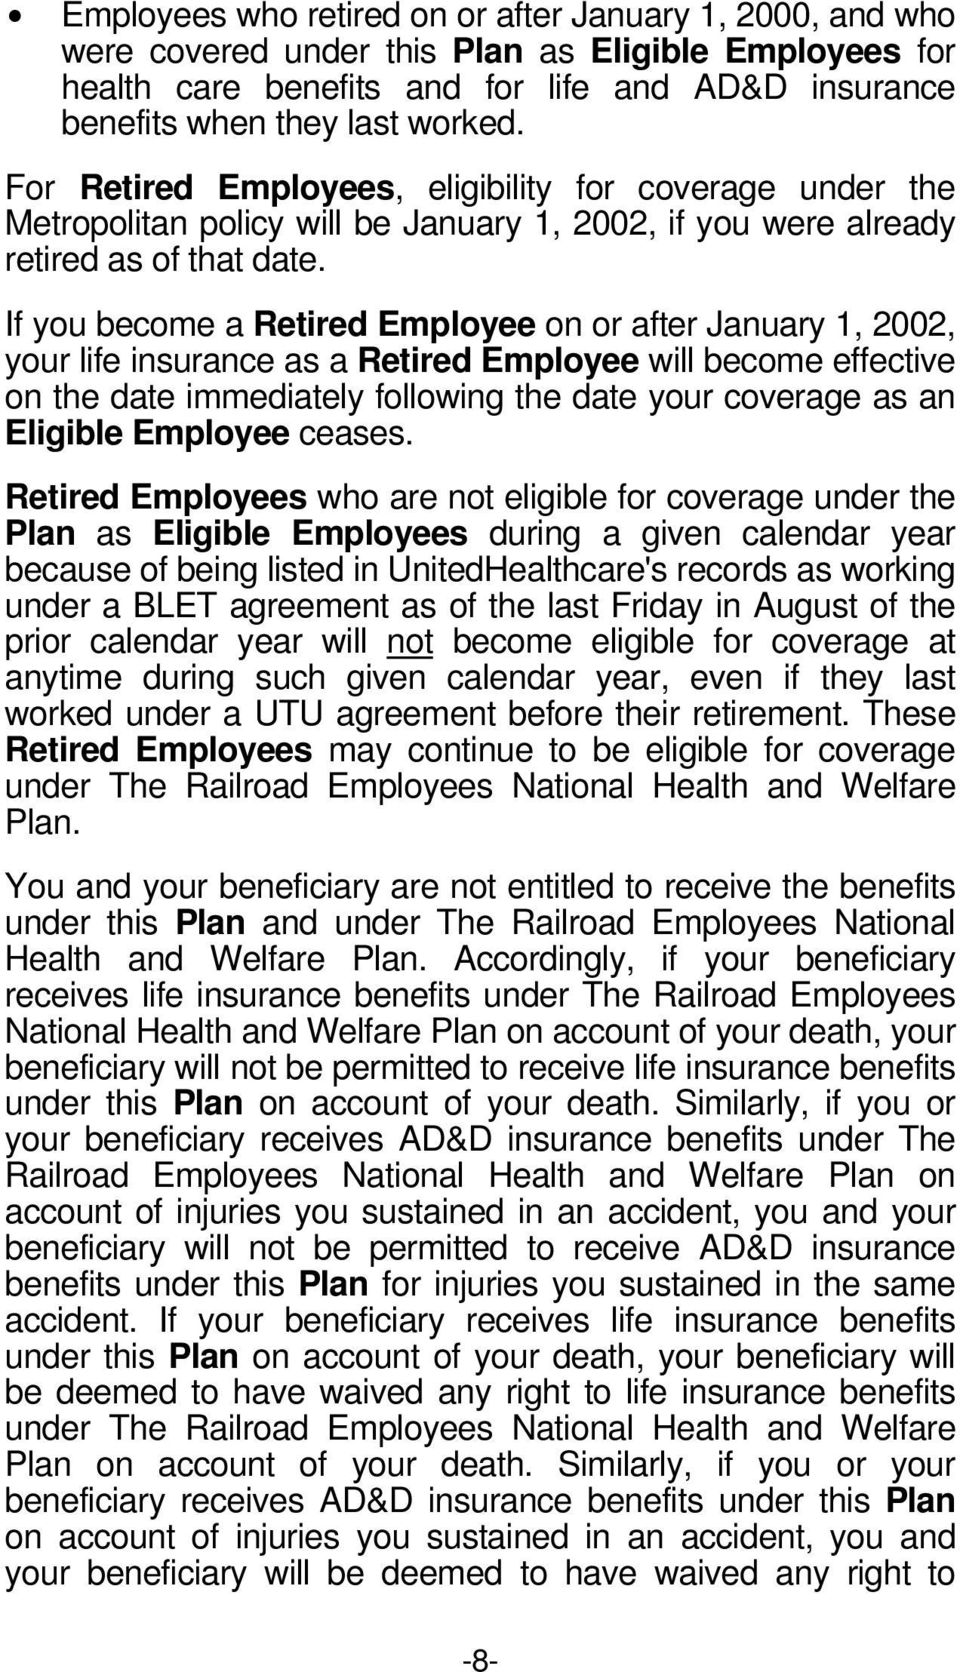 If you become a Retired Employee on or after January 1, 2002, your life insurance as a Retired Employee will become effective on the date immediately following the date your coverage as an Eligible